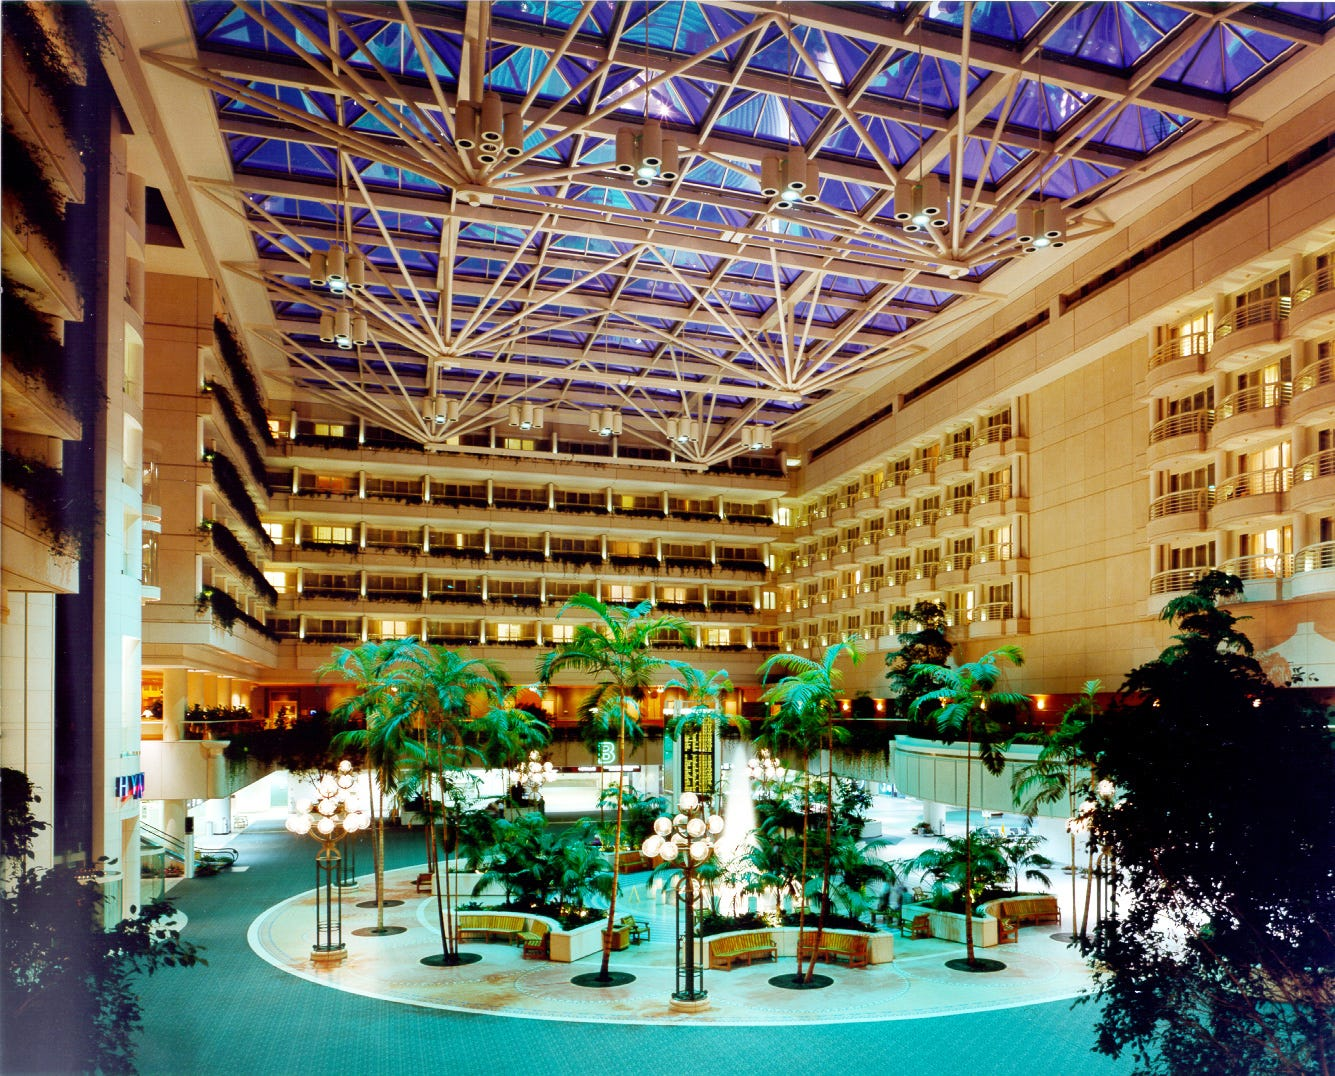 Orlando international airport